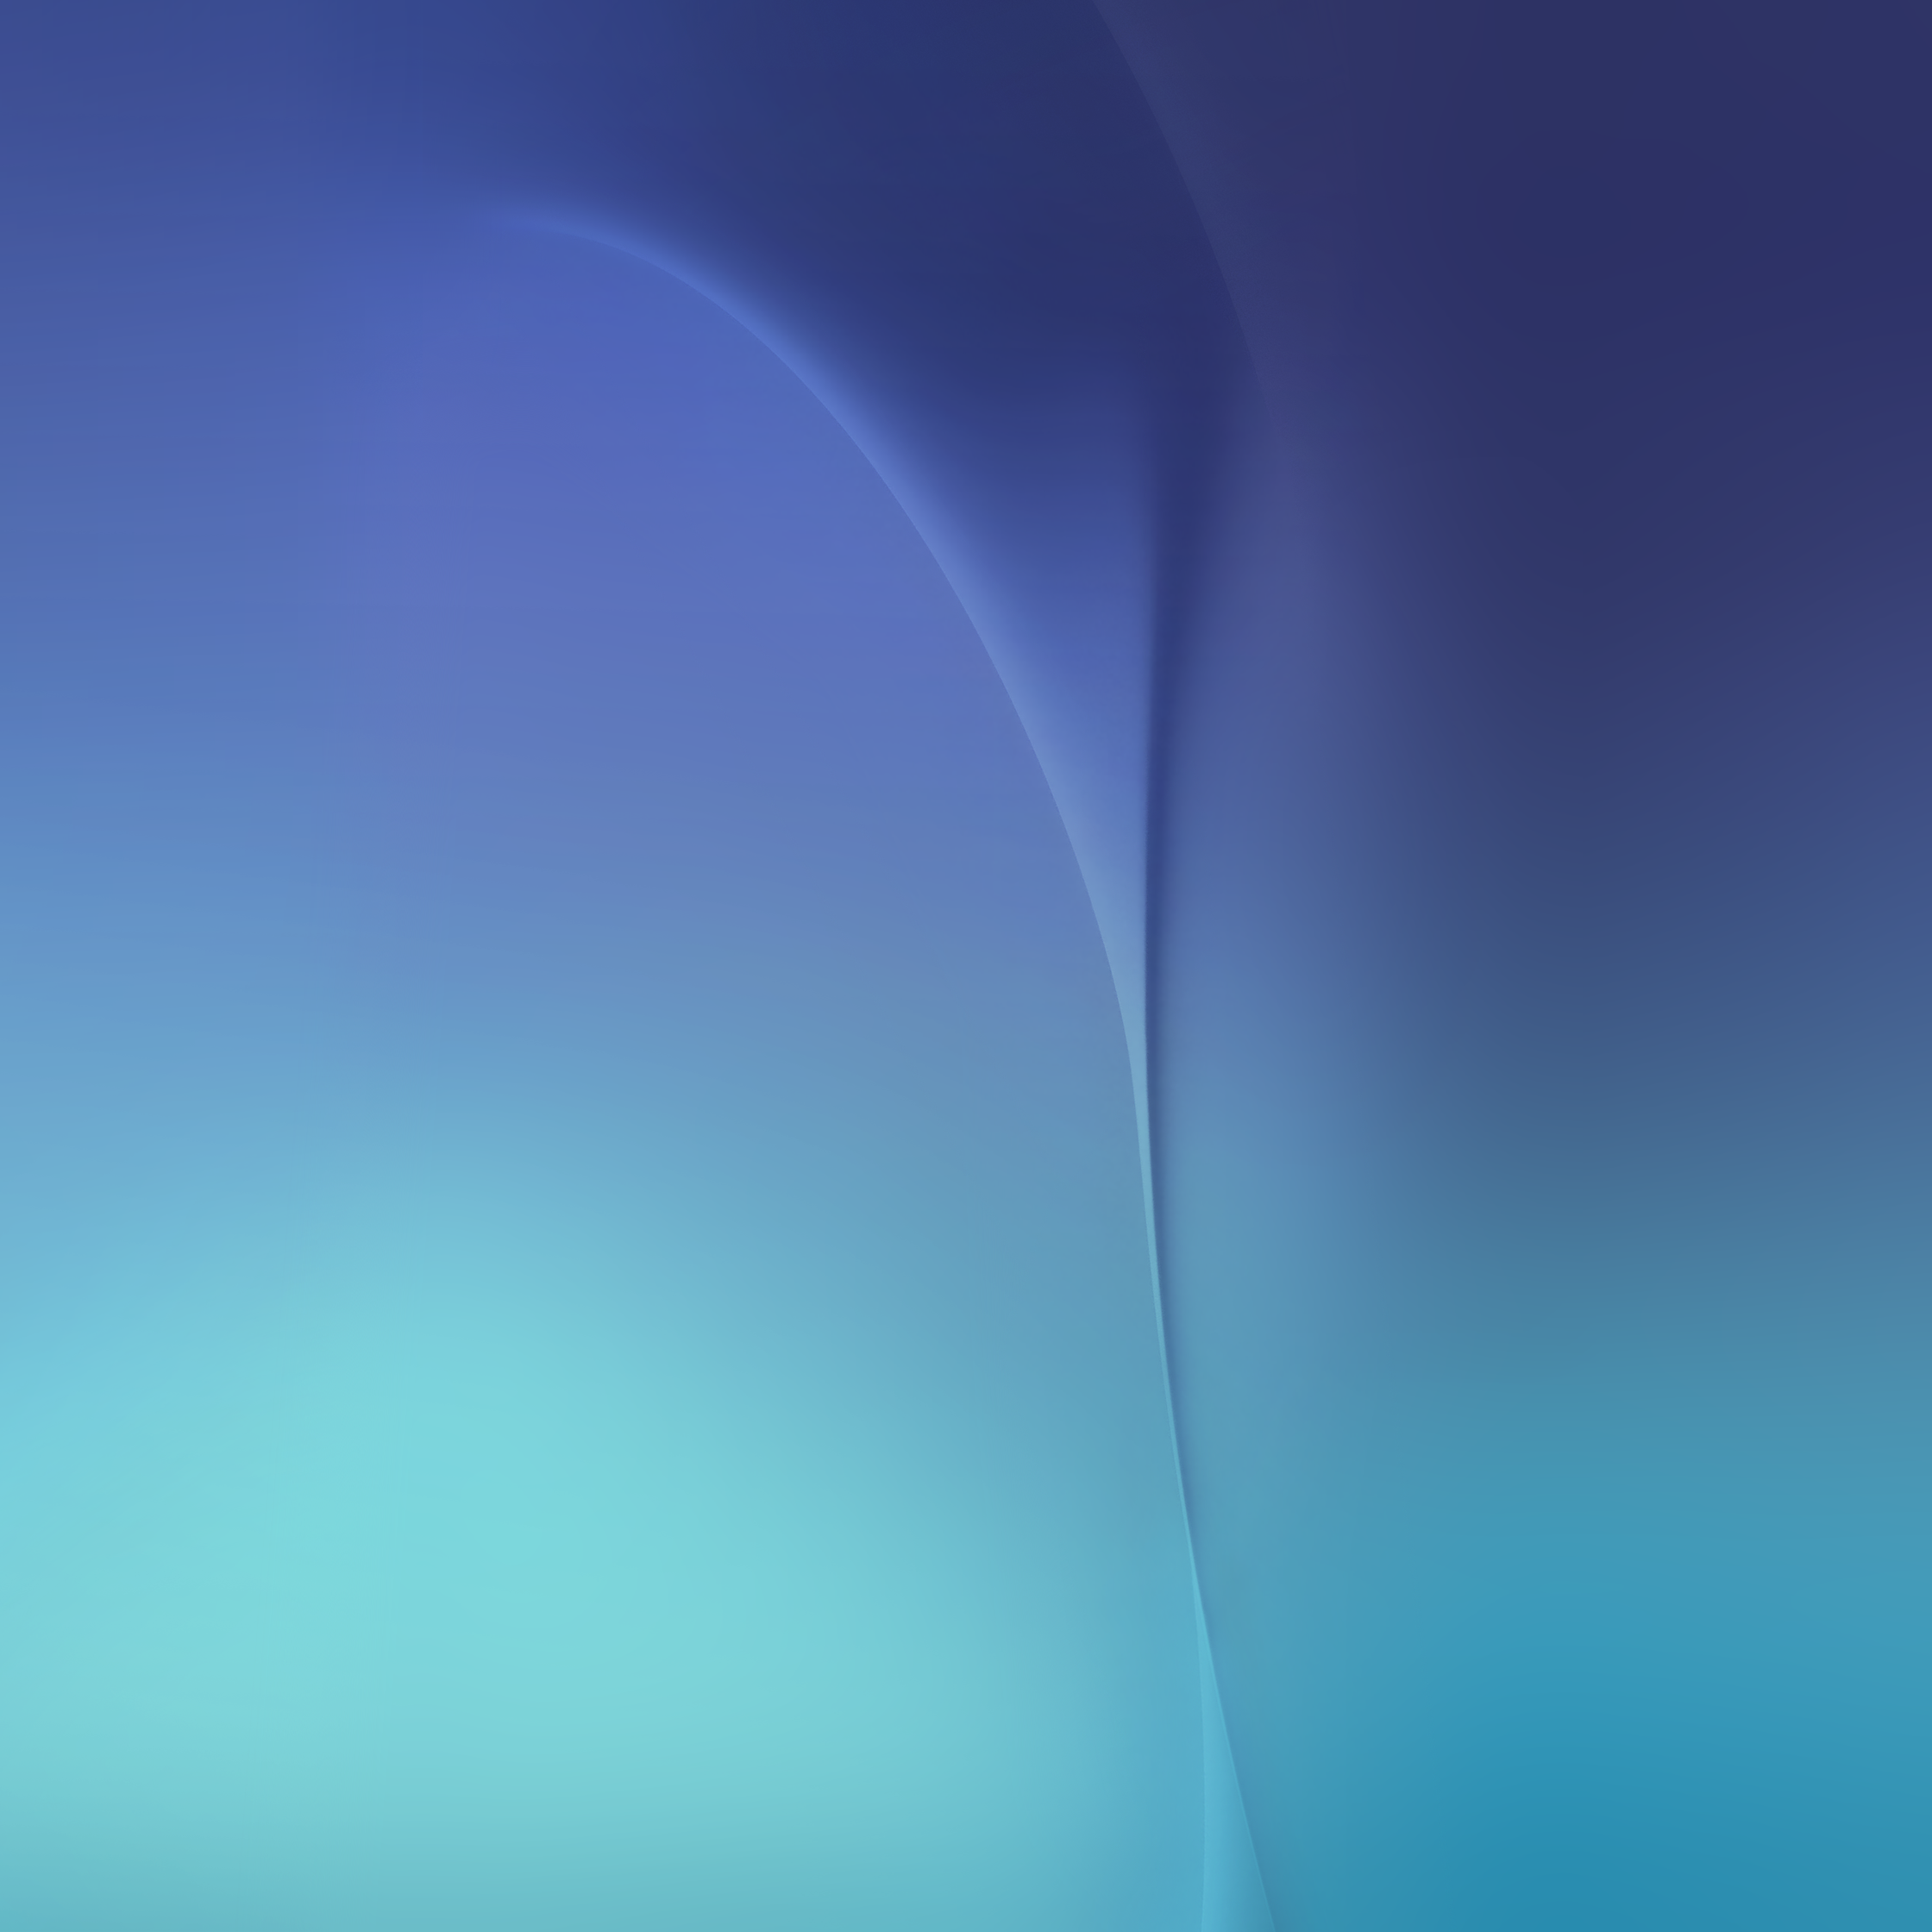 Samsung Galaxy S6 Edge Official Wallpaper 14 Samsung Galaxy S6 2240x2240